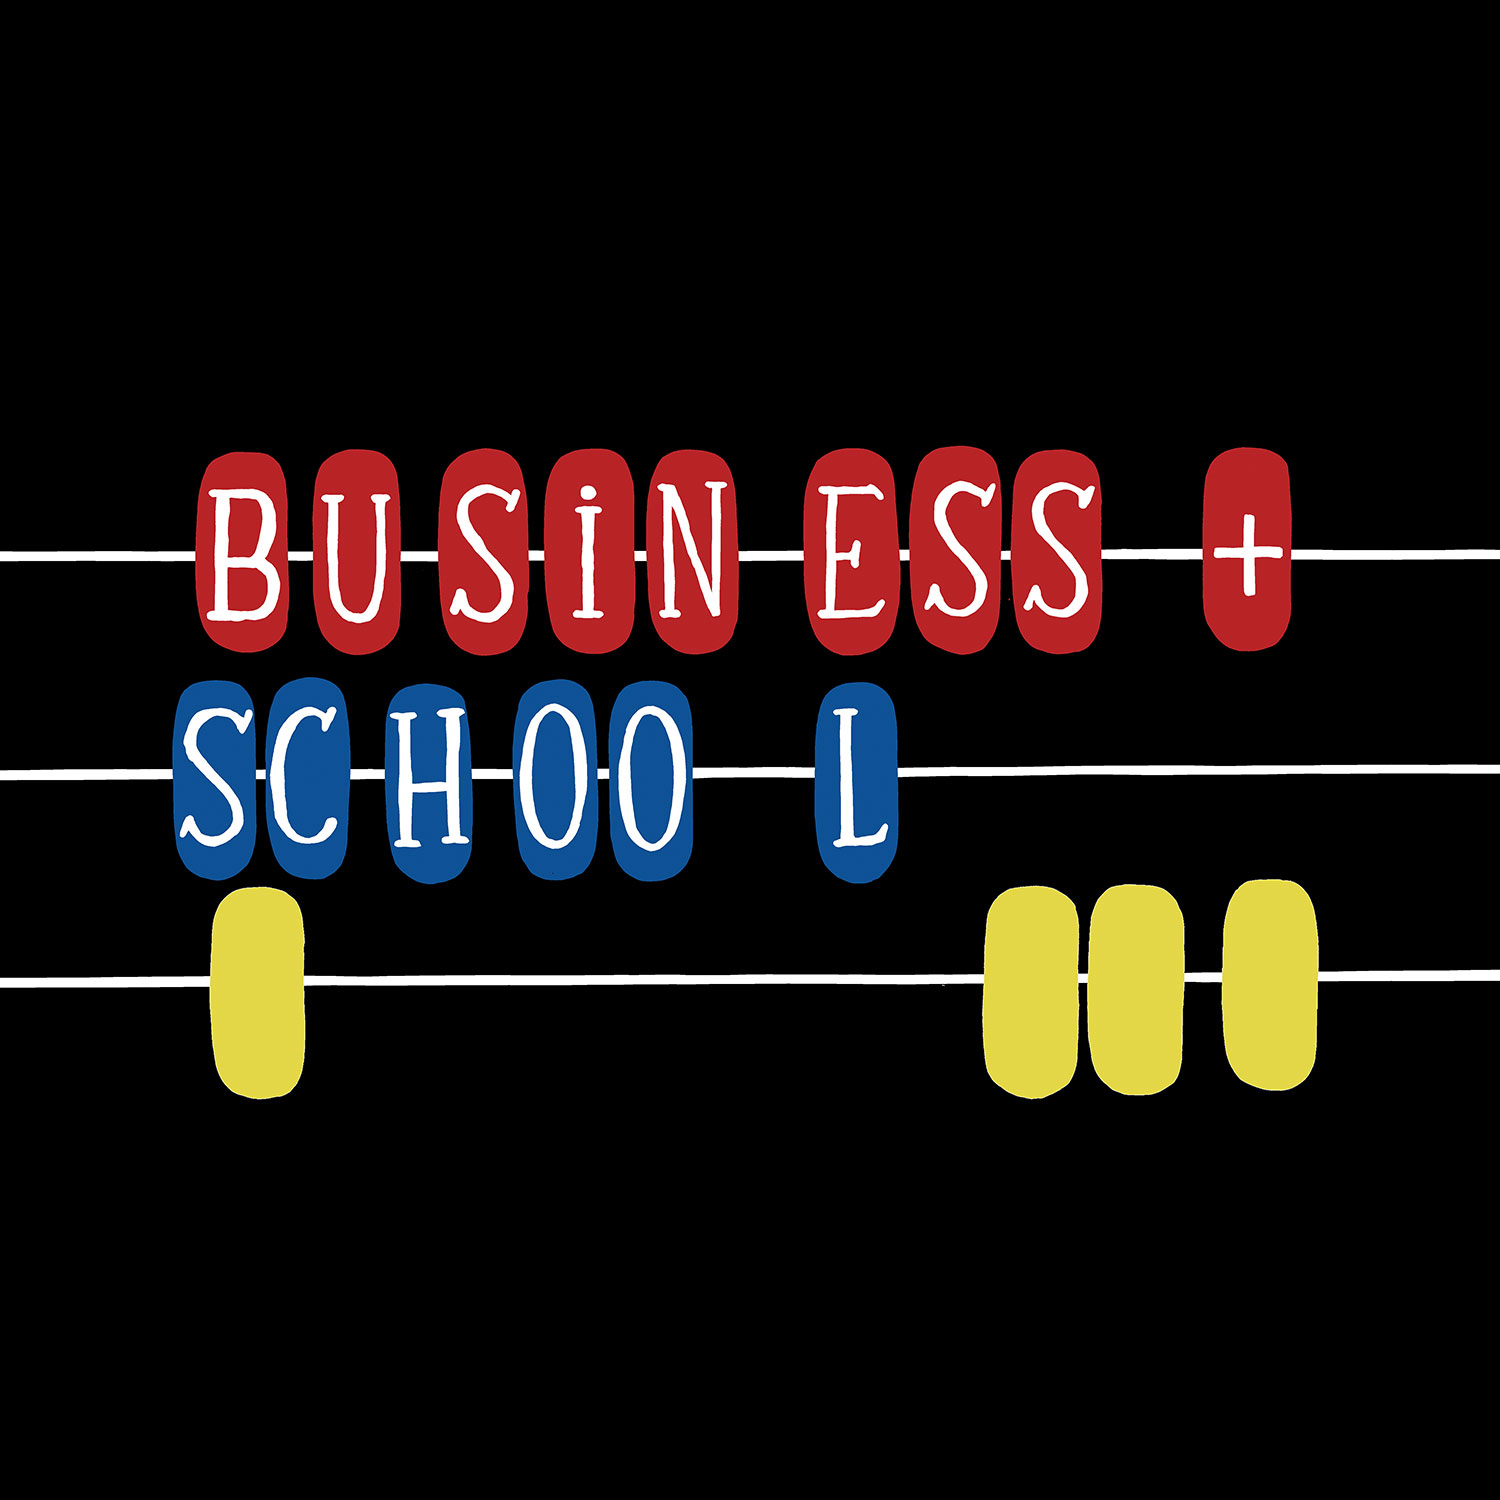 Illustration of Business + School